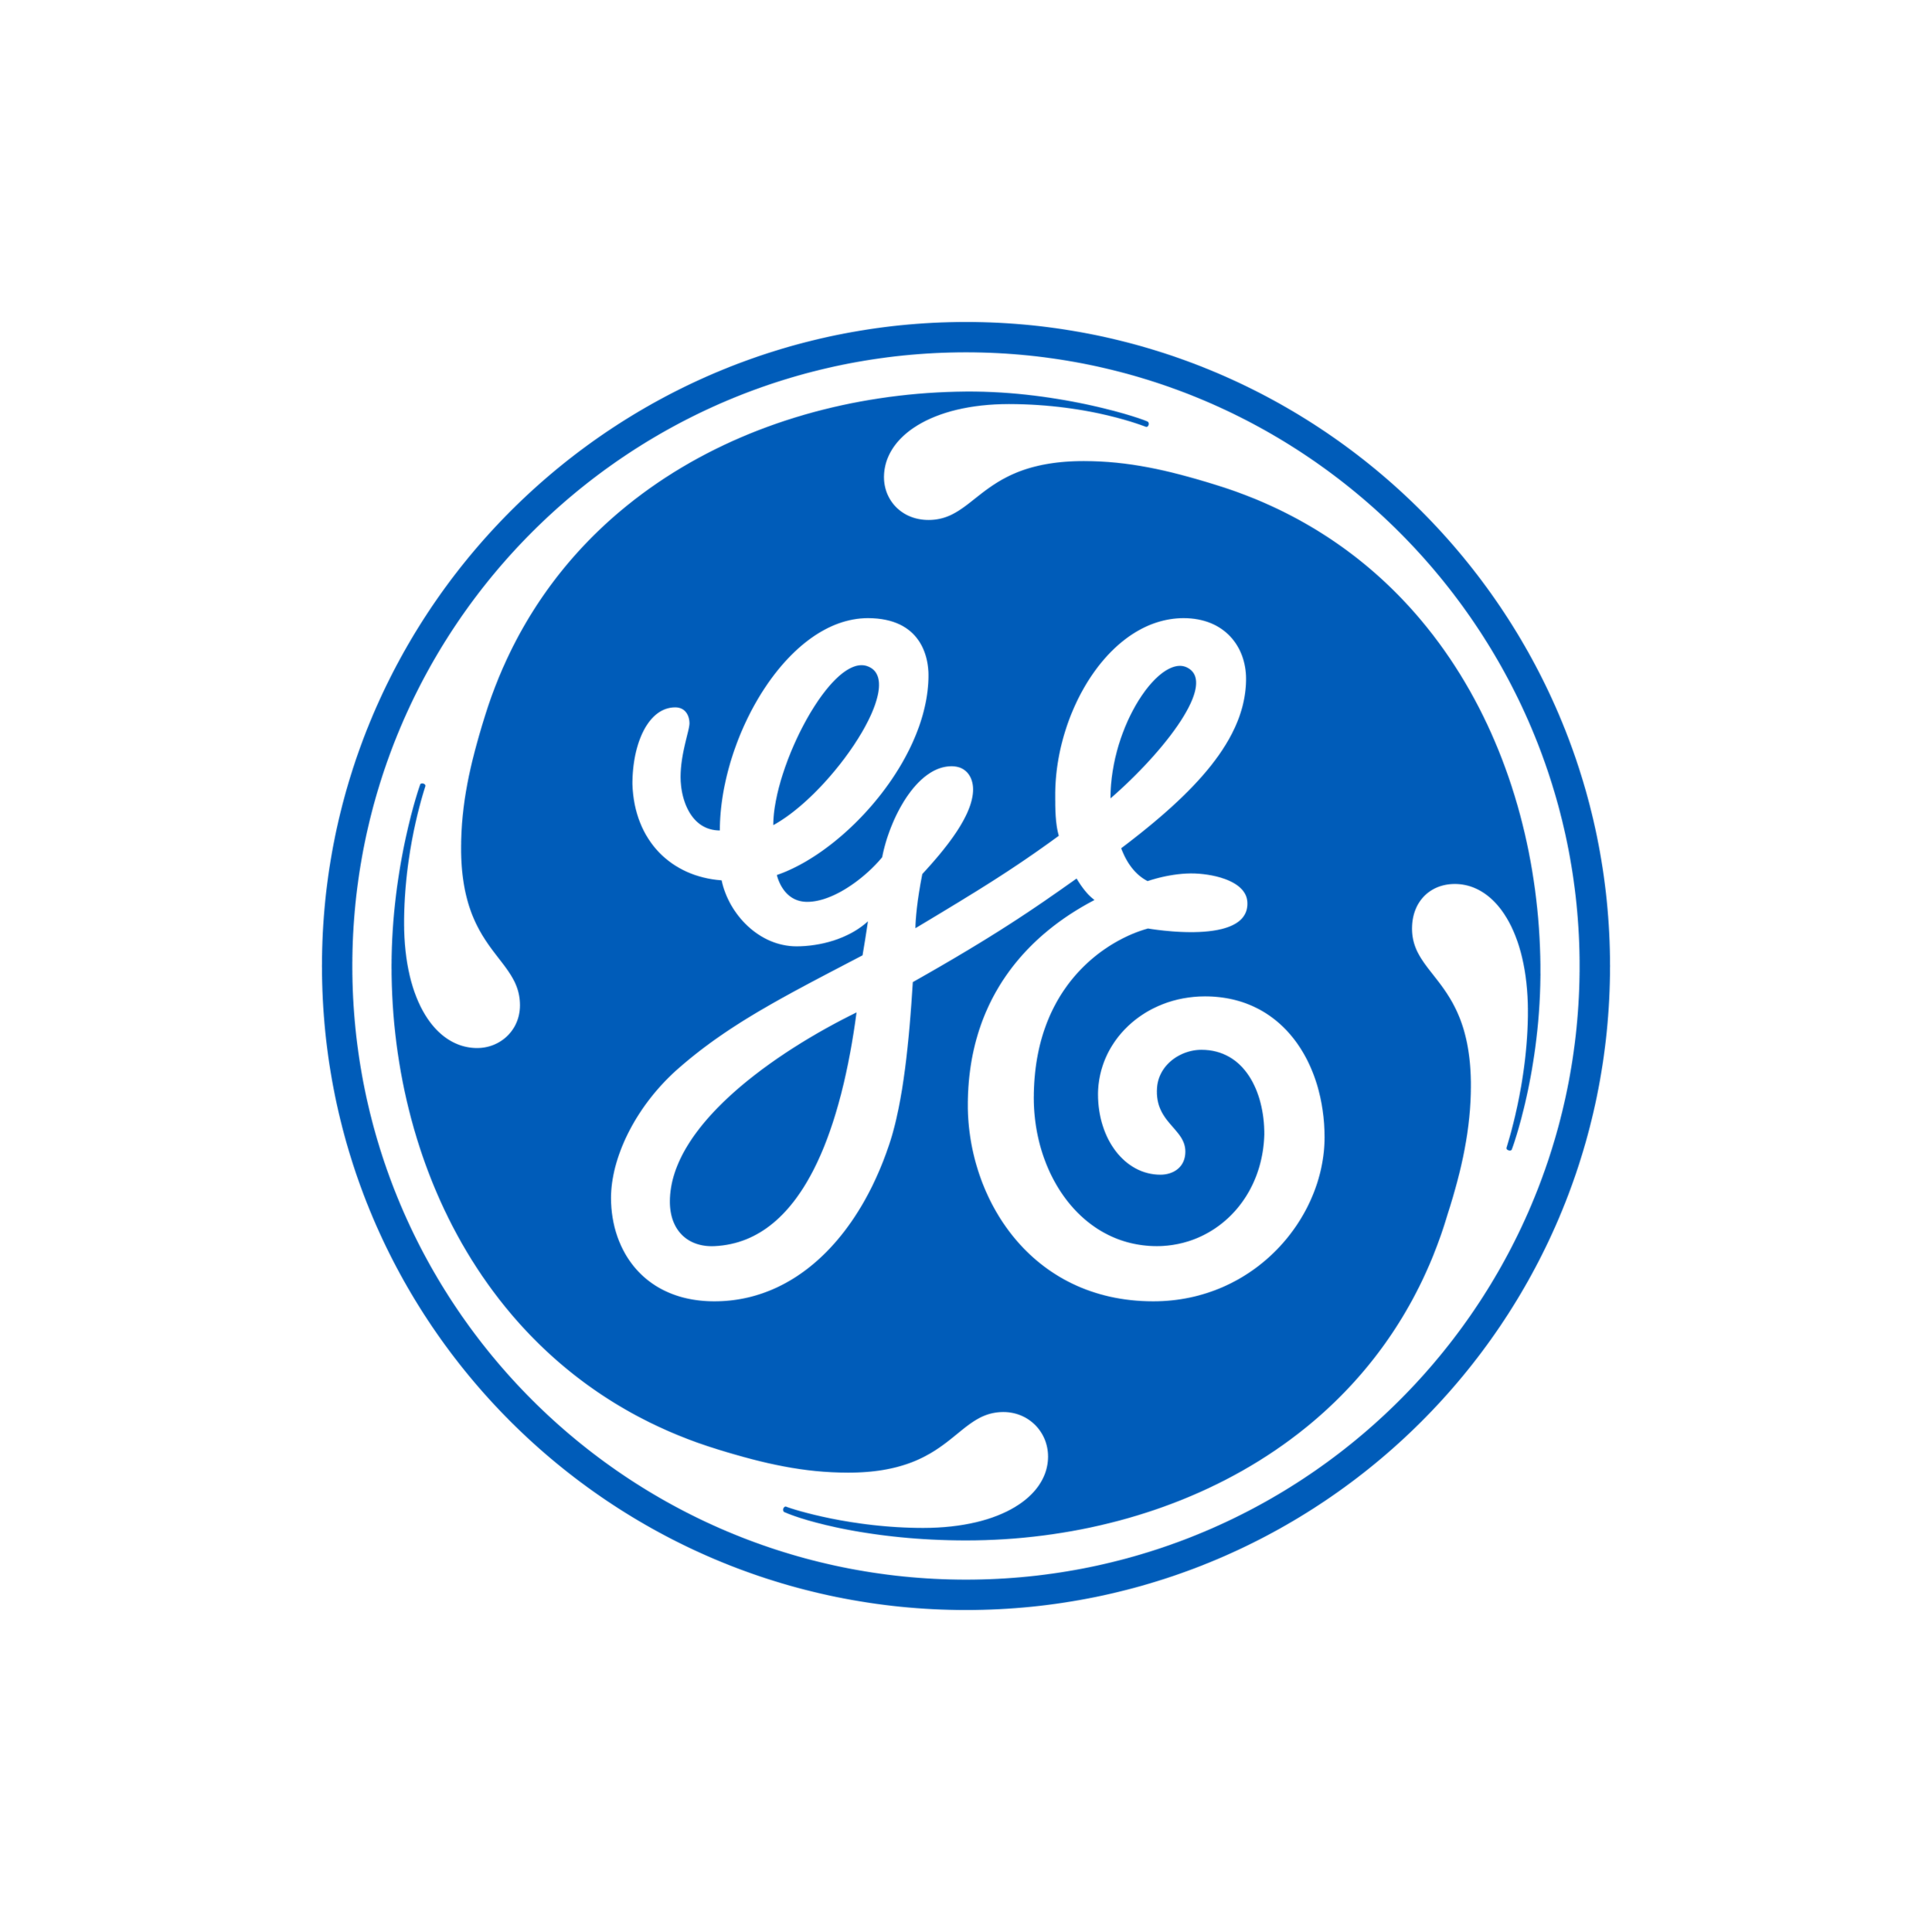 GE primary logo.png